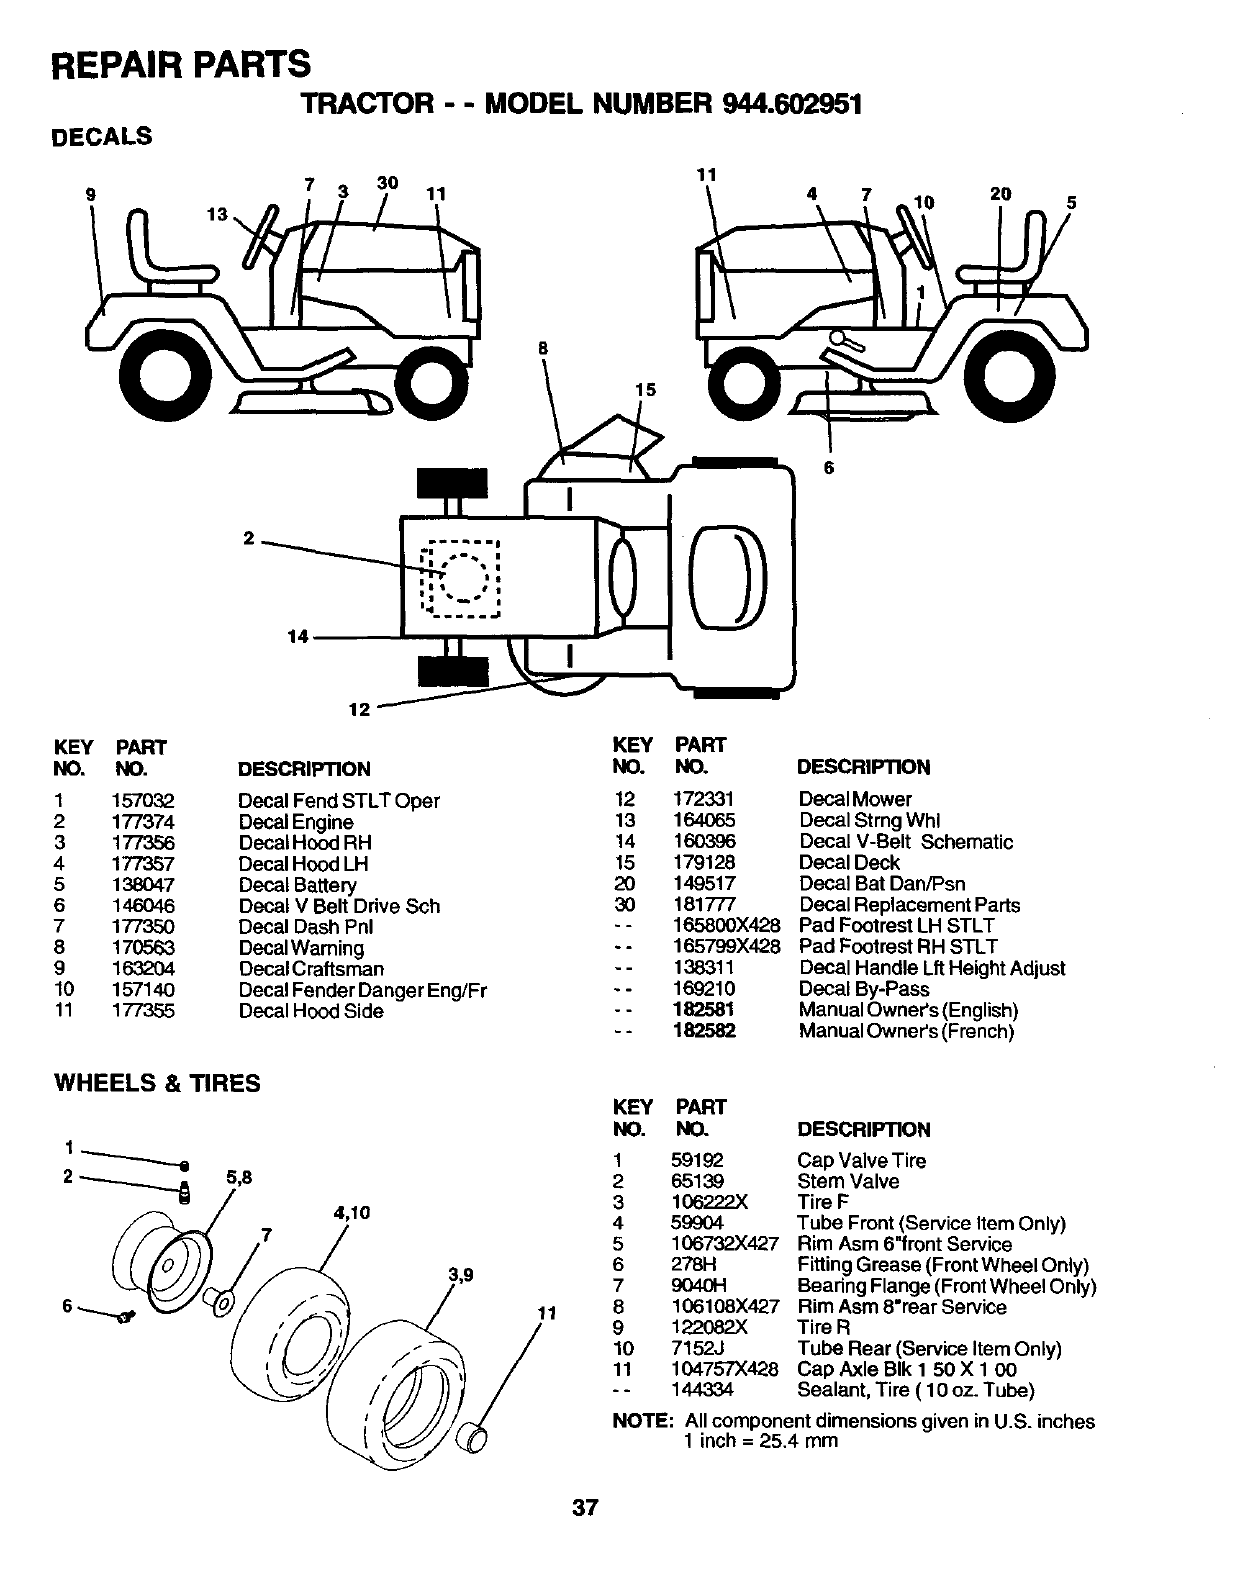 Page 37 of Craftsman Lawn Mower 944.602951 User Guide